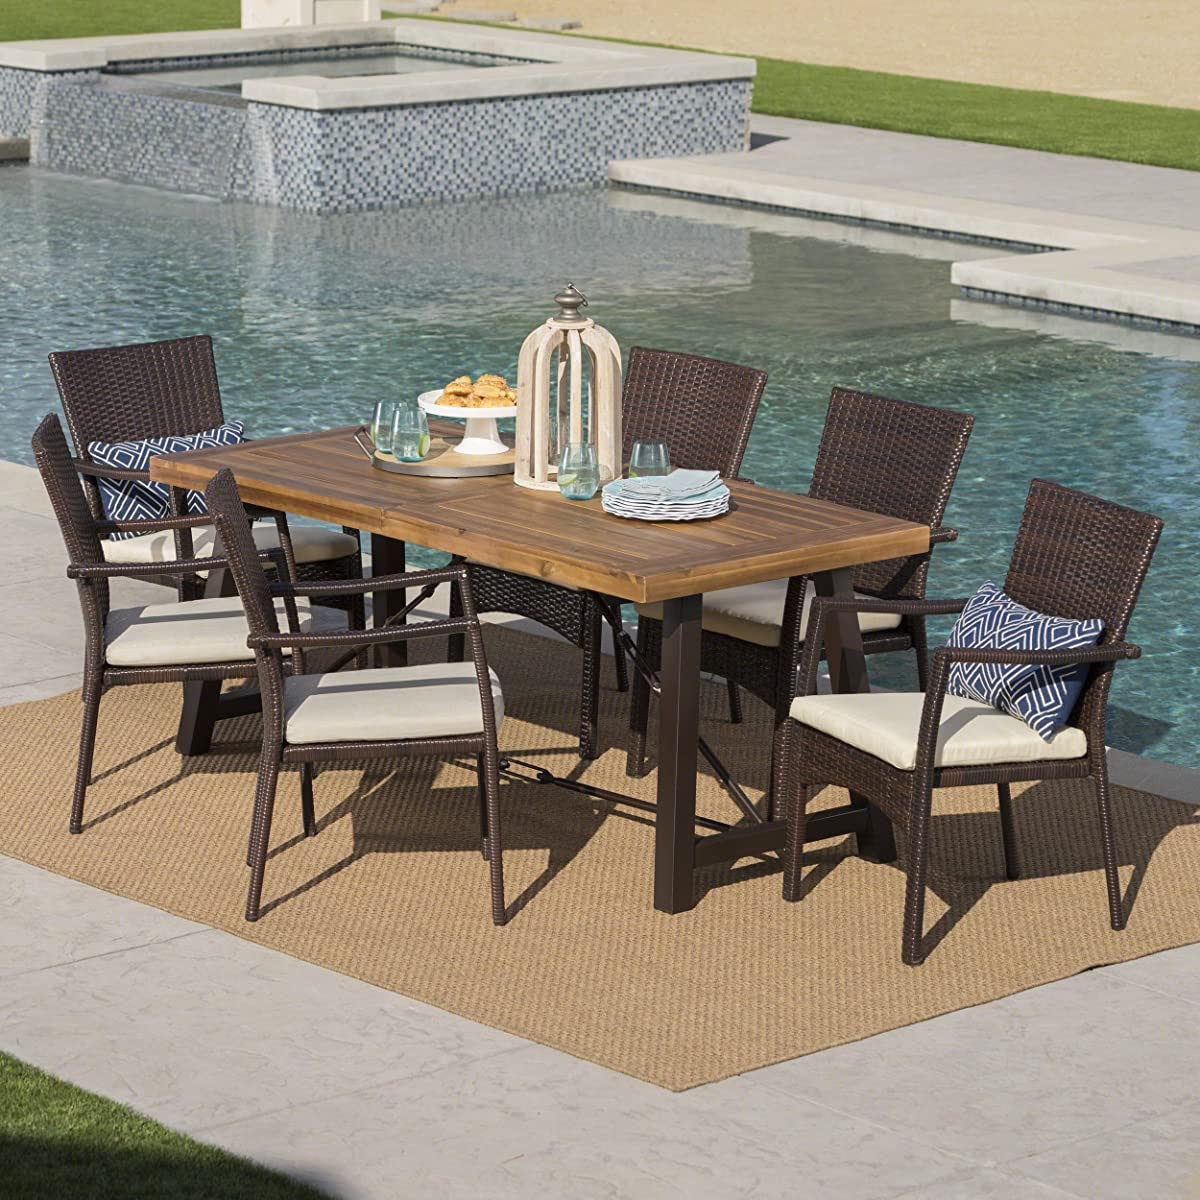 Great Deal Furniture Playa Outdoor 7 Piece Dining Set with Teak Finished Wood Table and Brown Wicker Dining Chairs with Crème Water Resistant Cushions